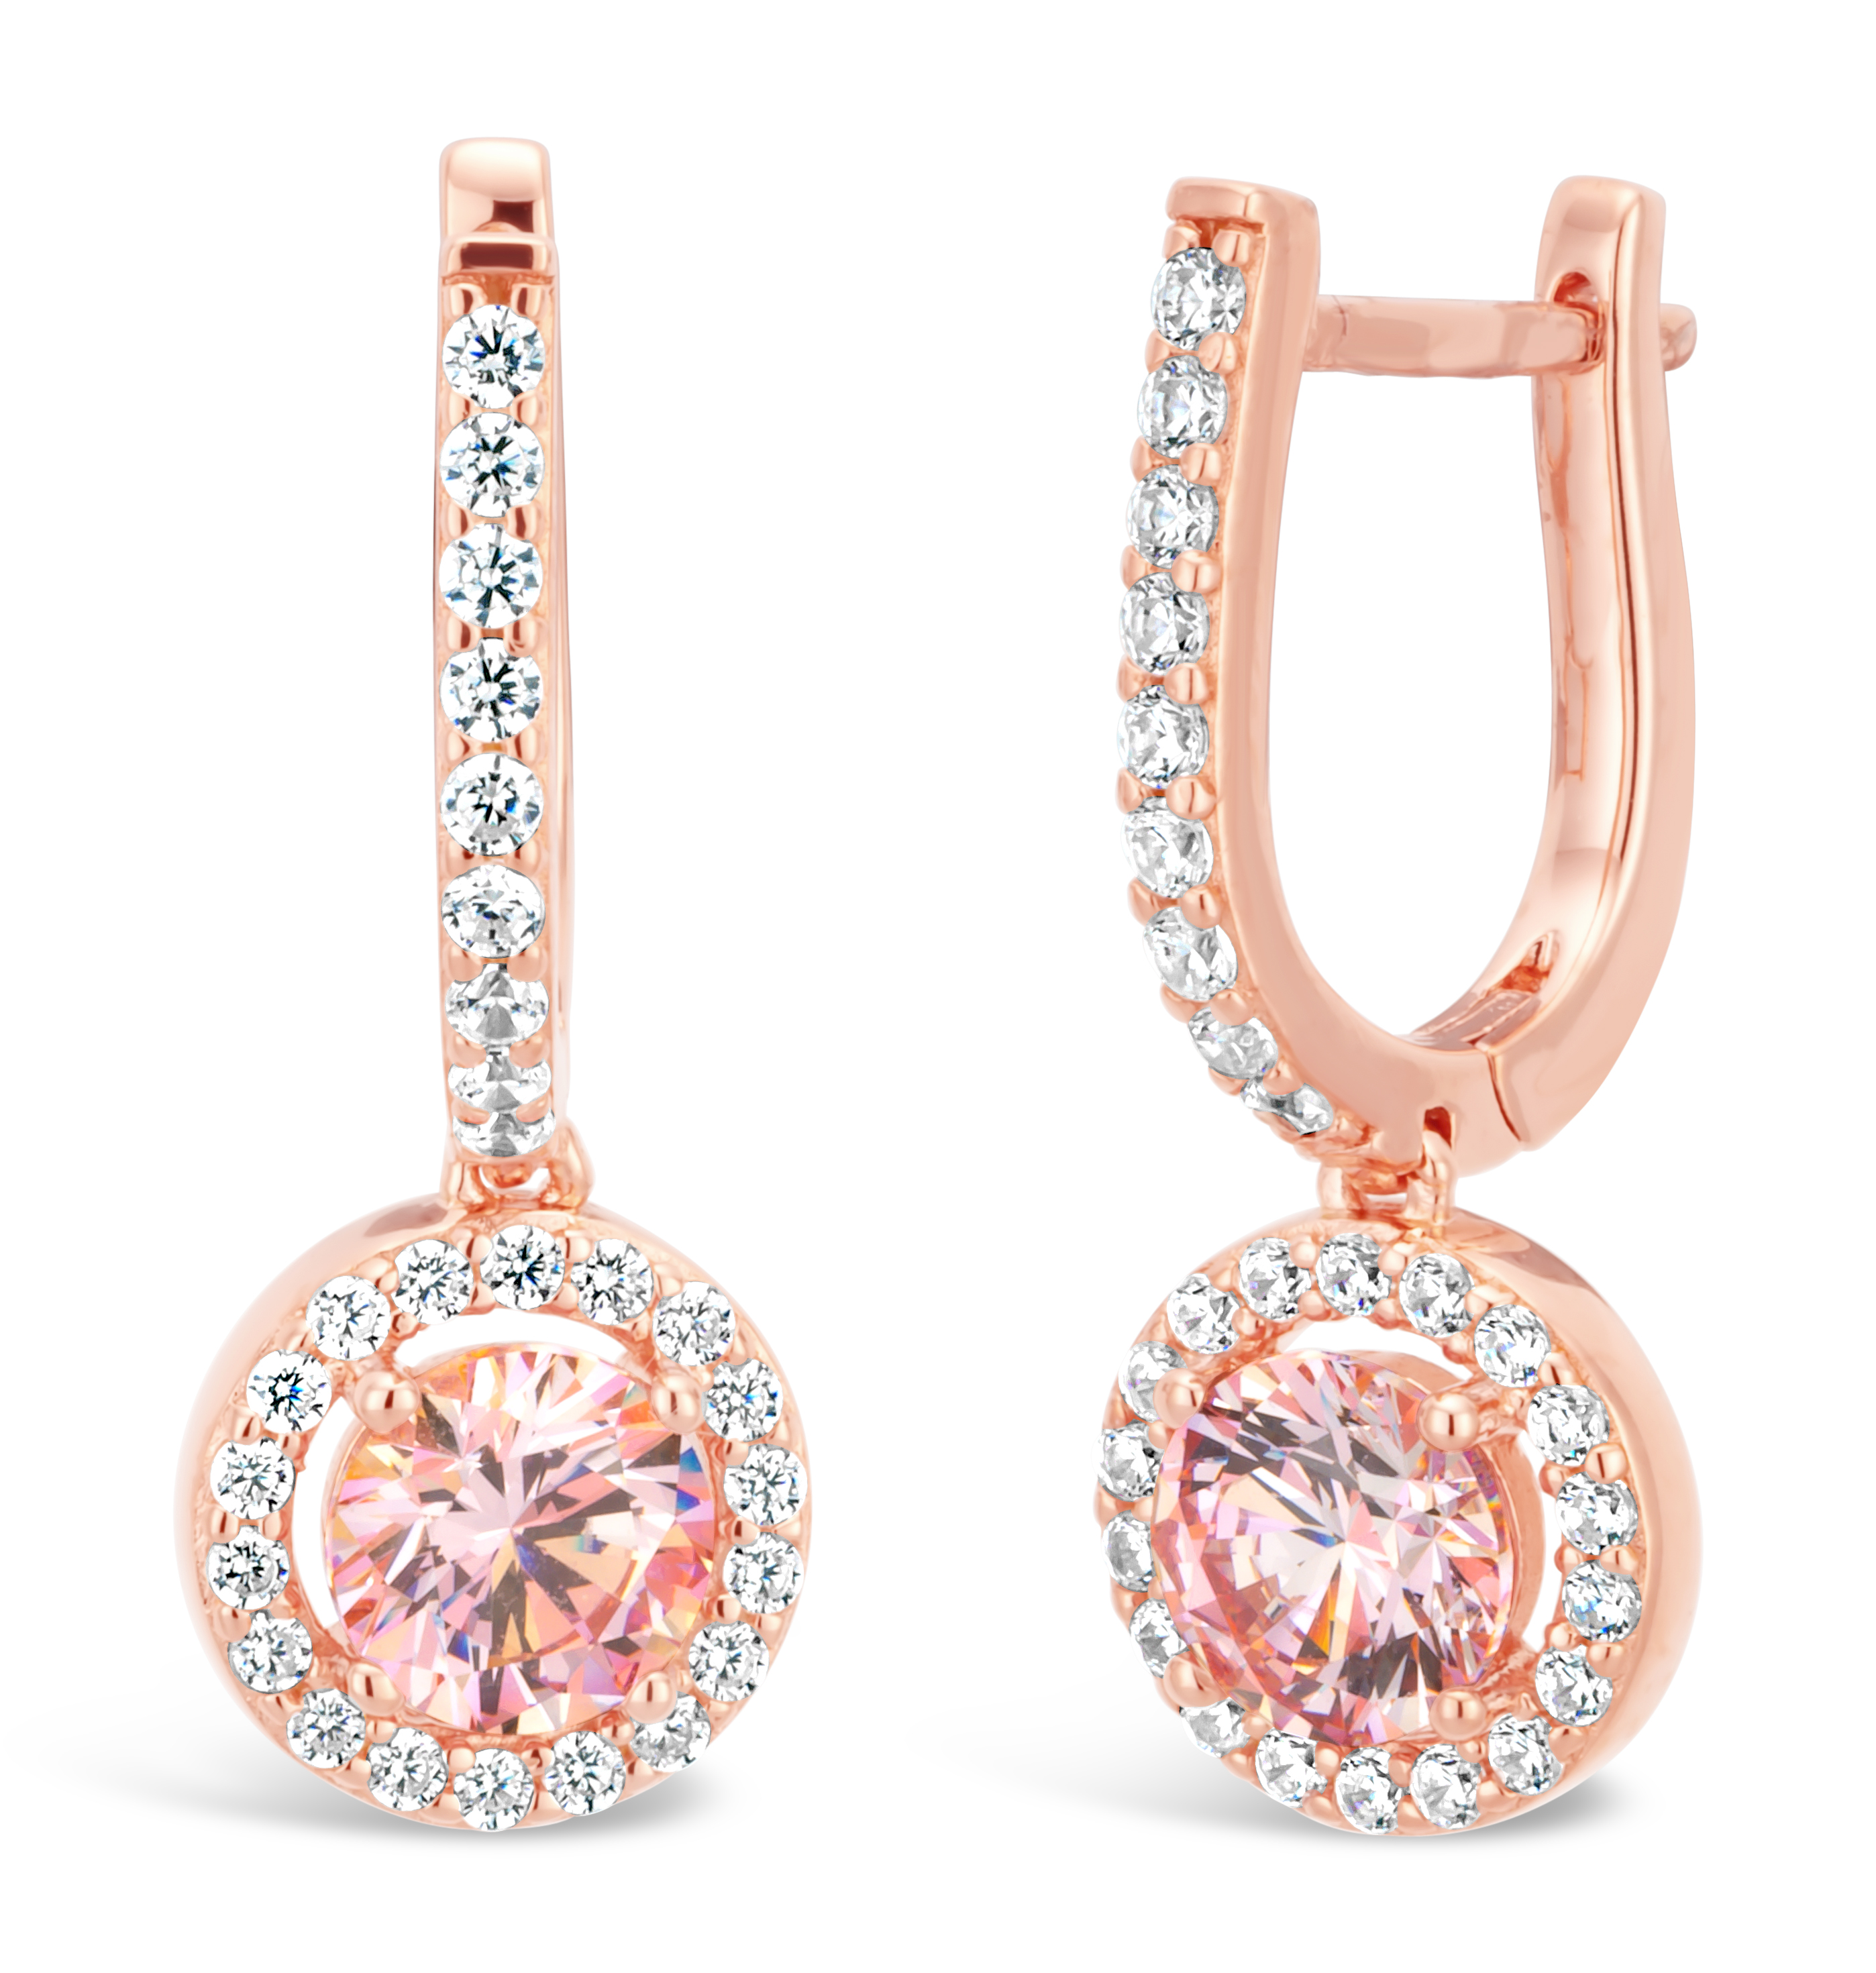 Sterling Silver and Rose Gold Plated Crystal and Zirconia Earrings